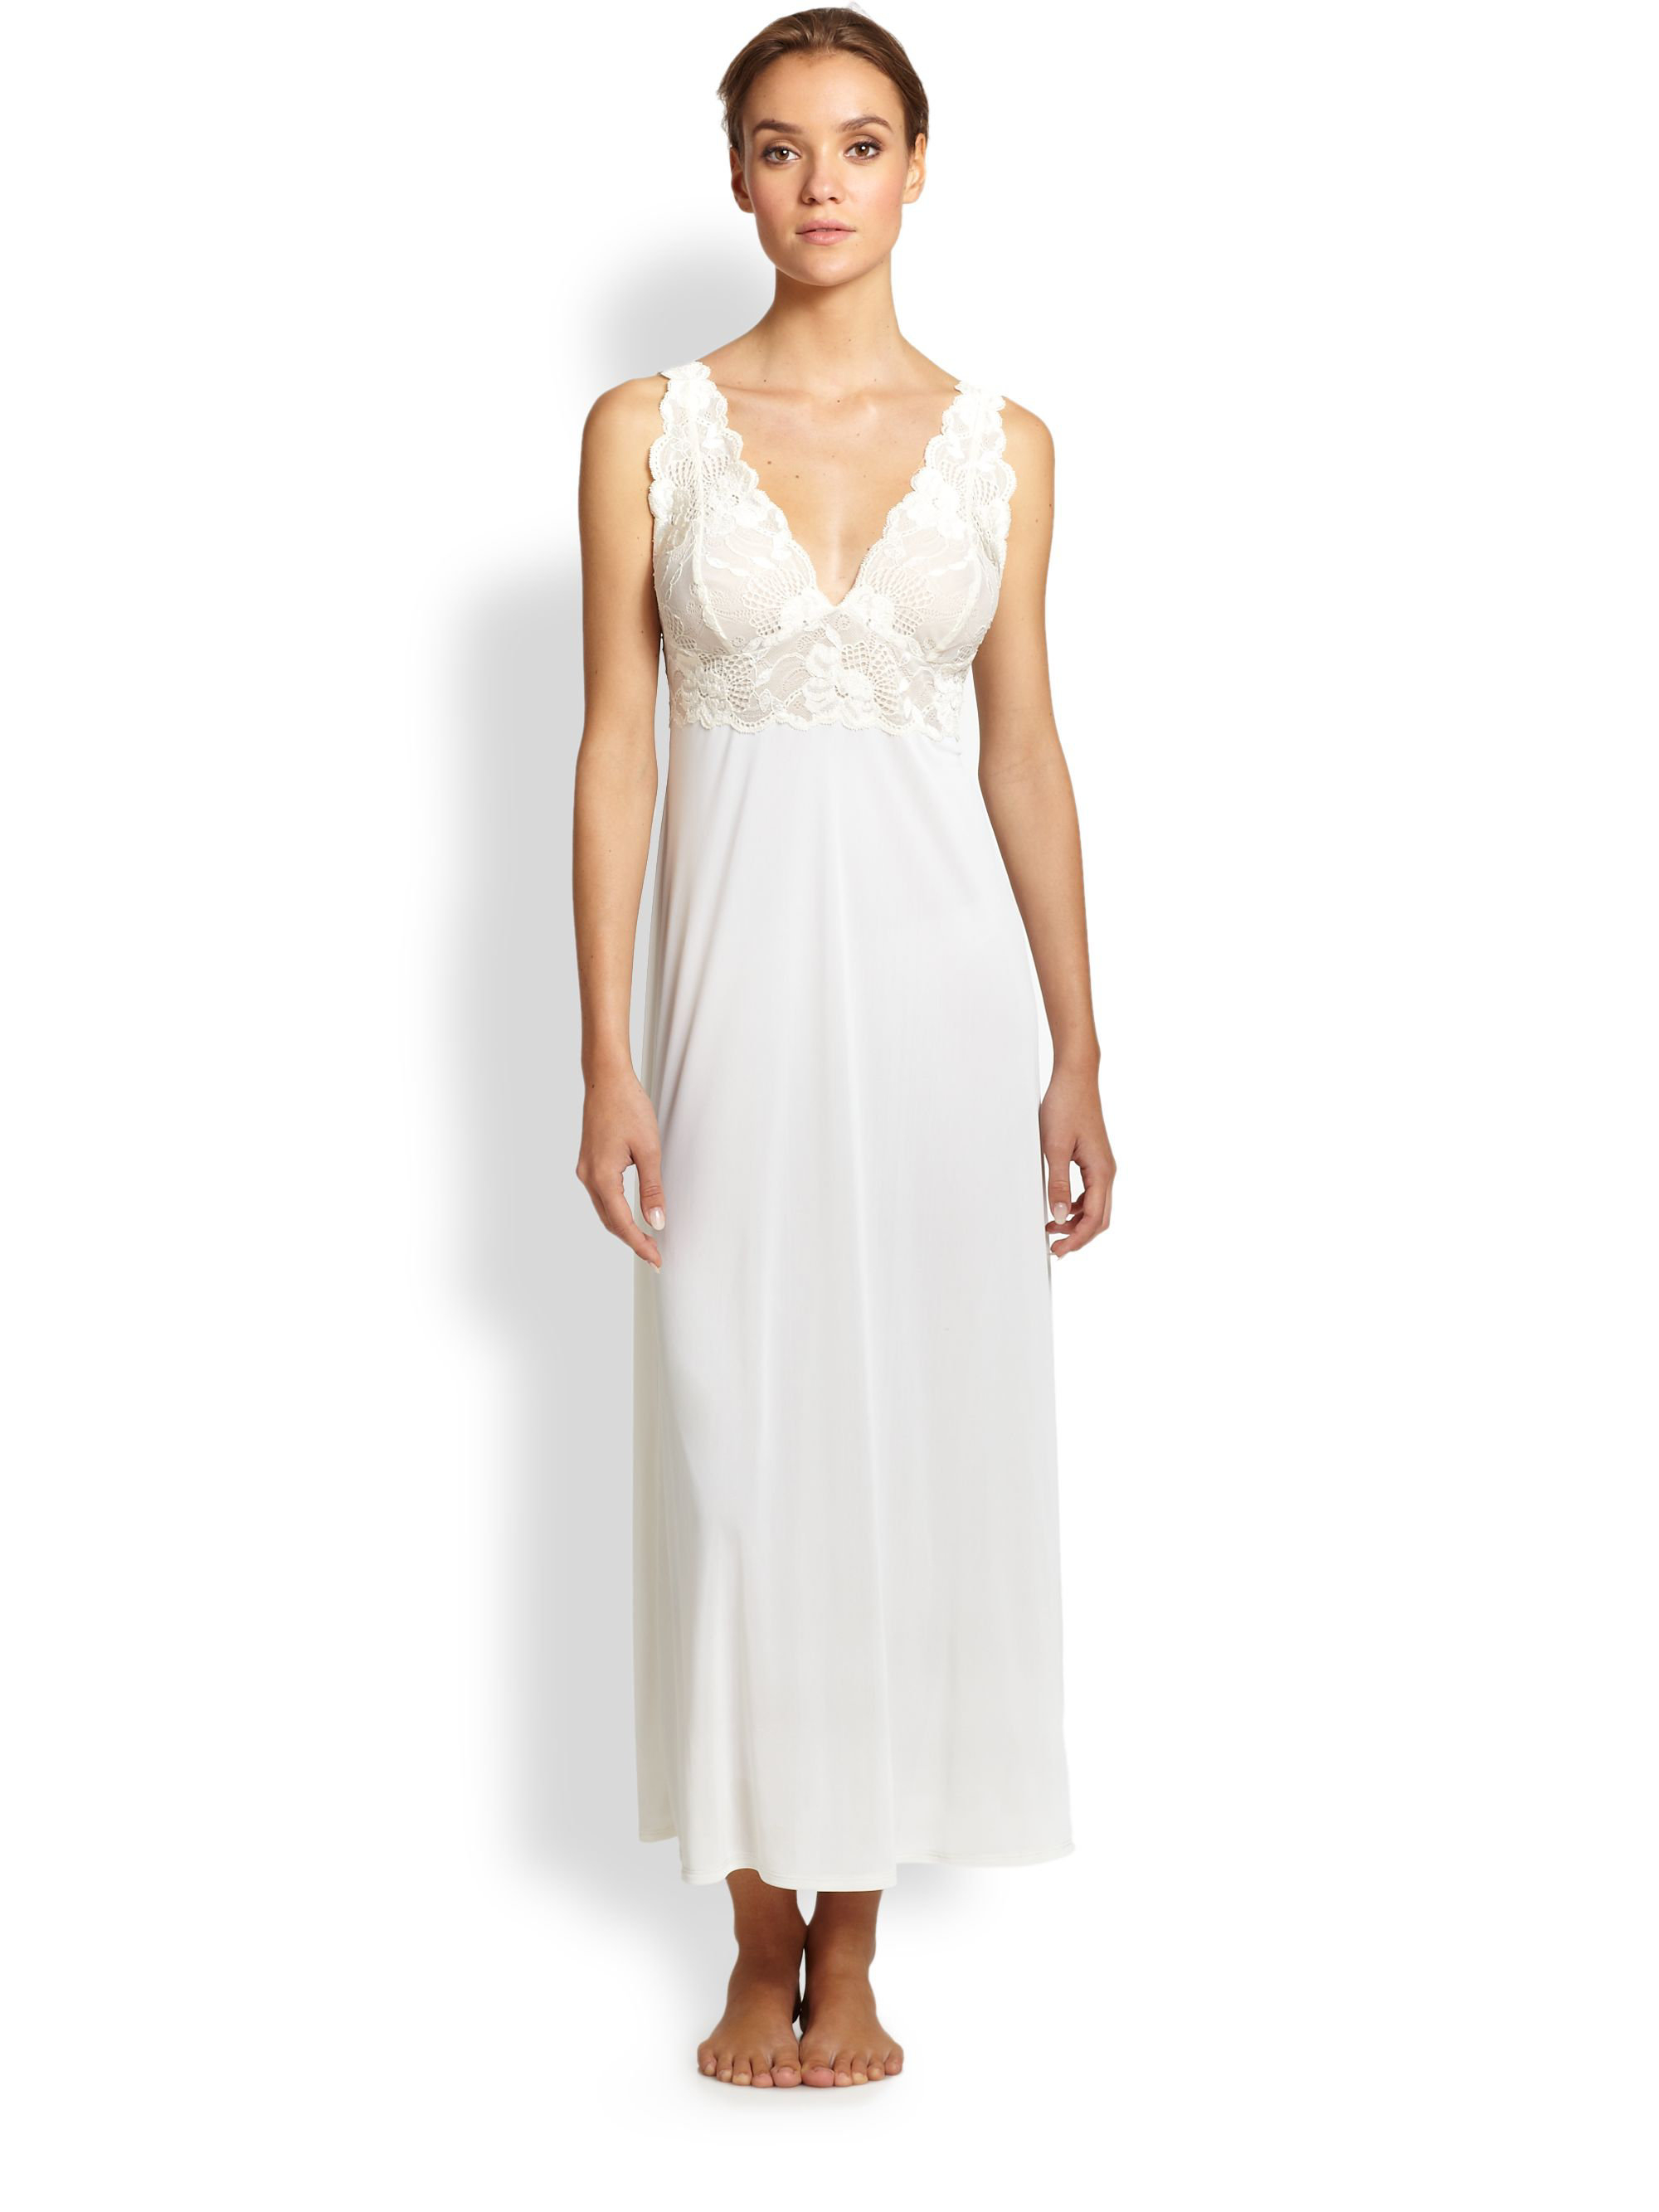 Lyst - Natori Zen Floral Lace-trim Gown in White